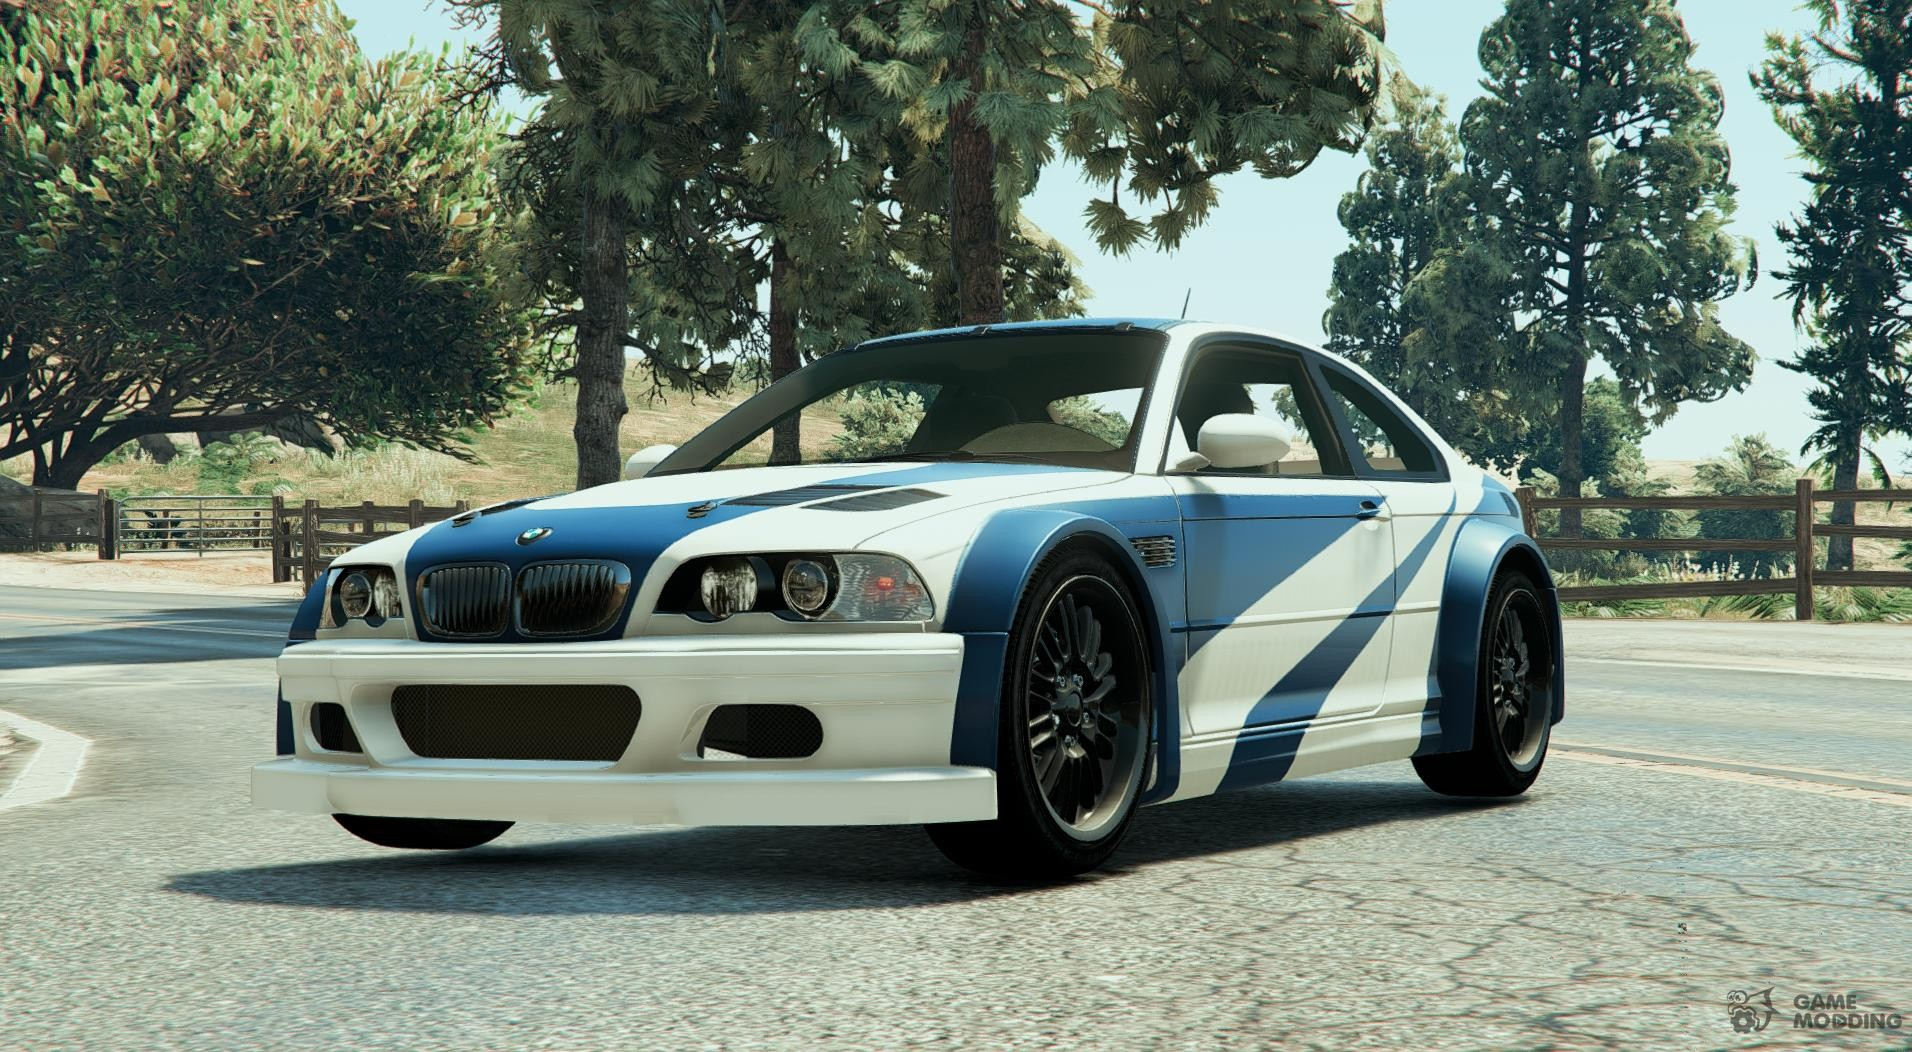 Bmw m3 gtr e46 most wanted 13 for gta 5 swarovskicordoba Gallery